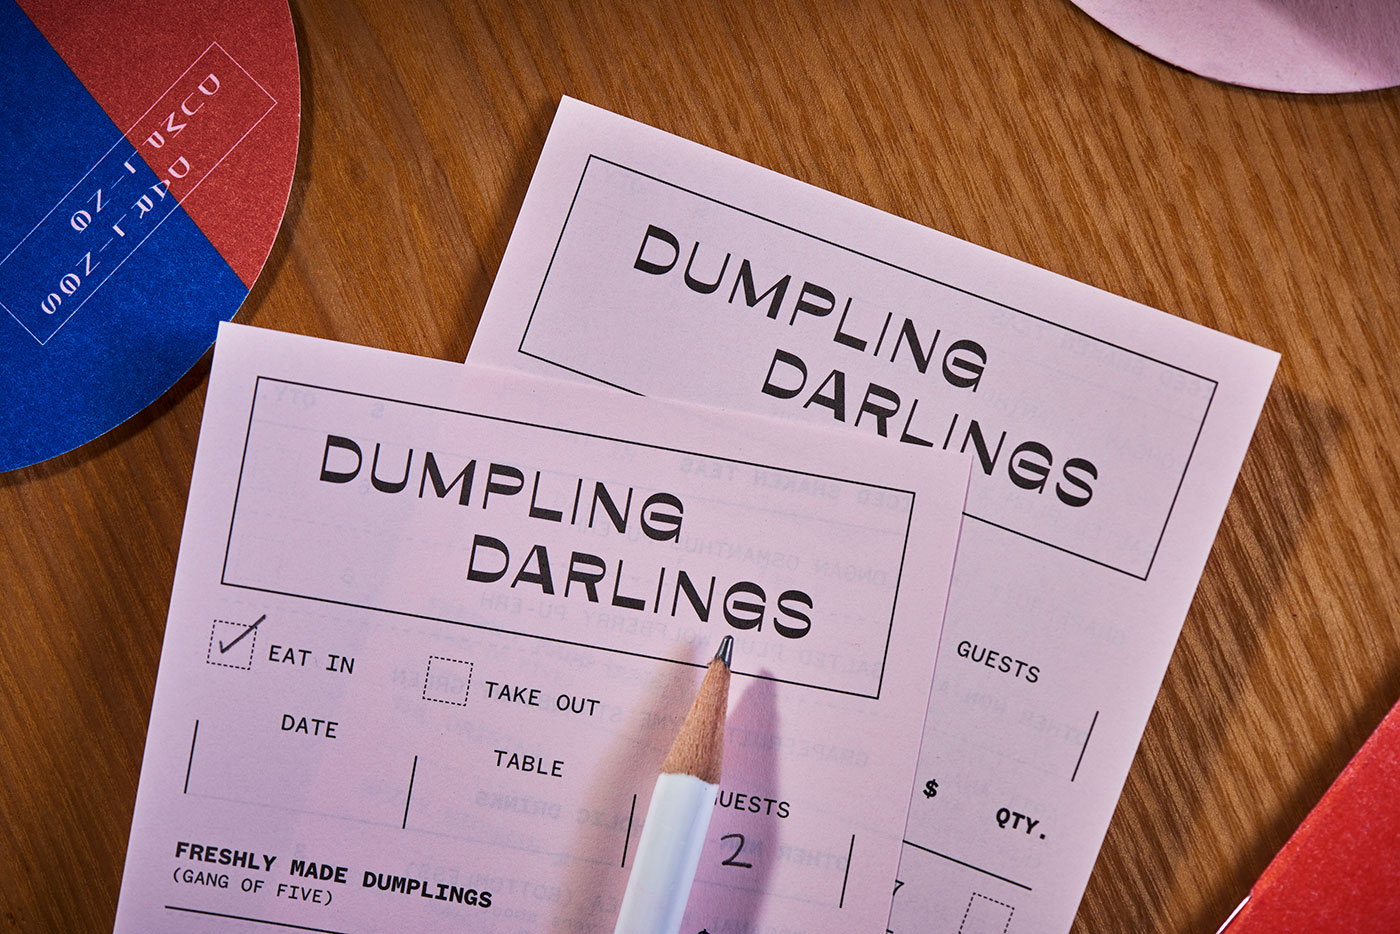 Dumpling Darlings identity